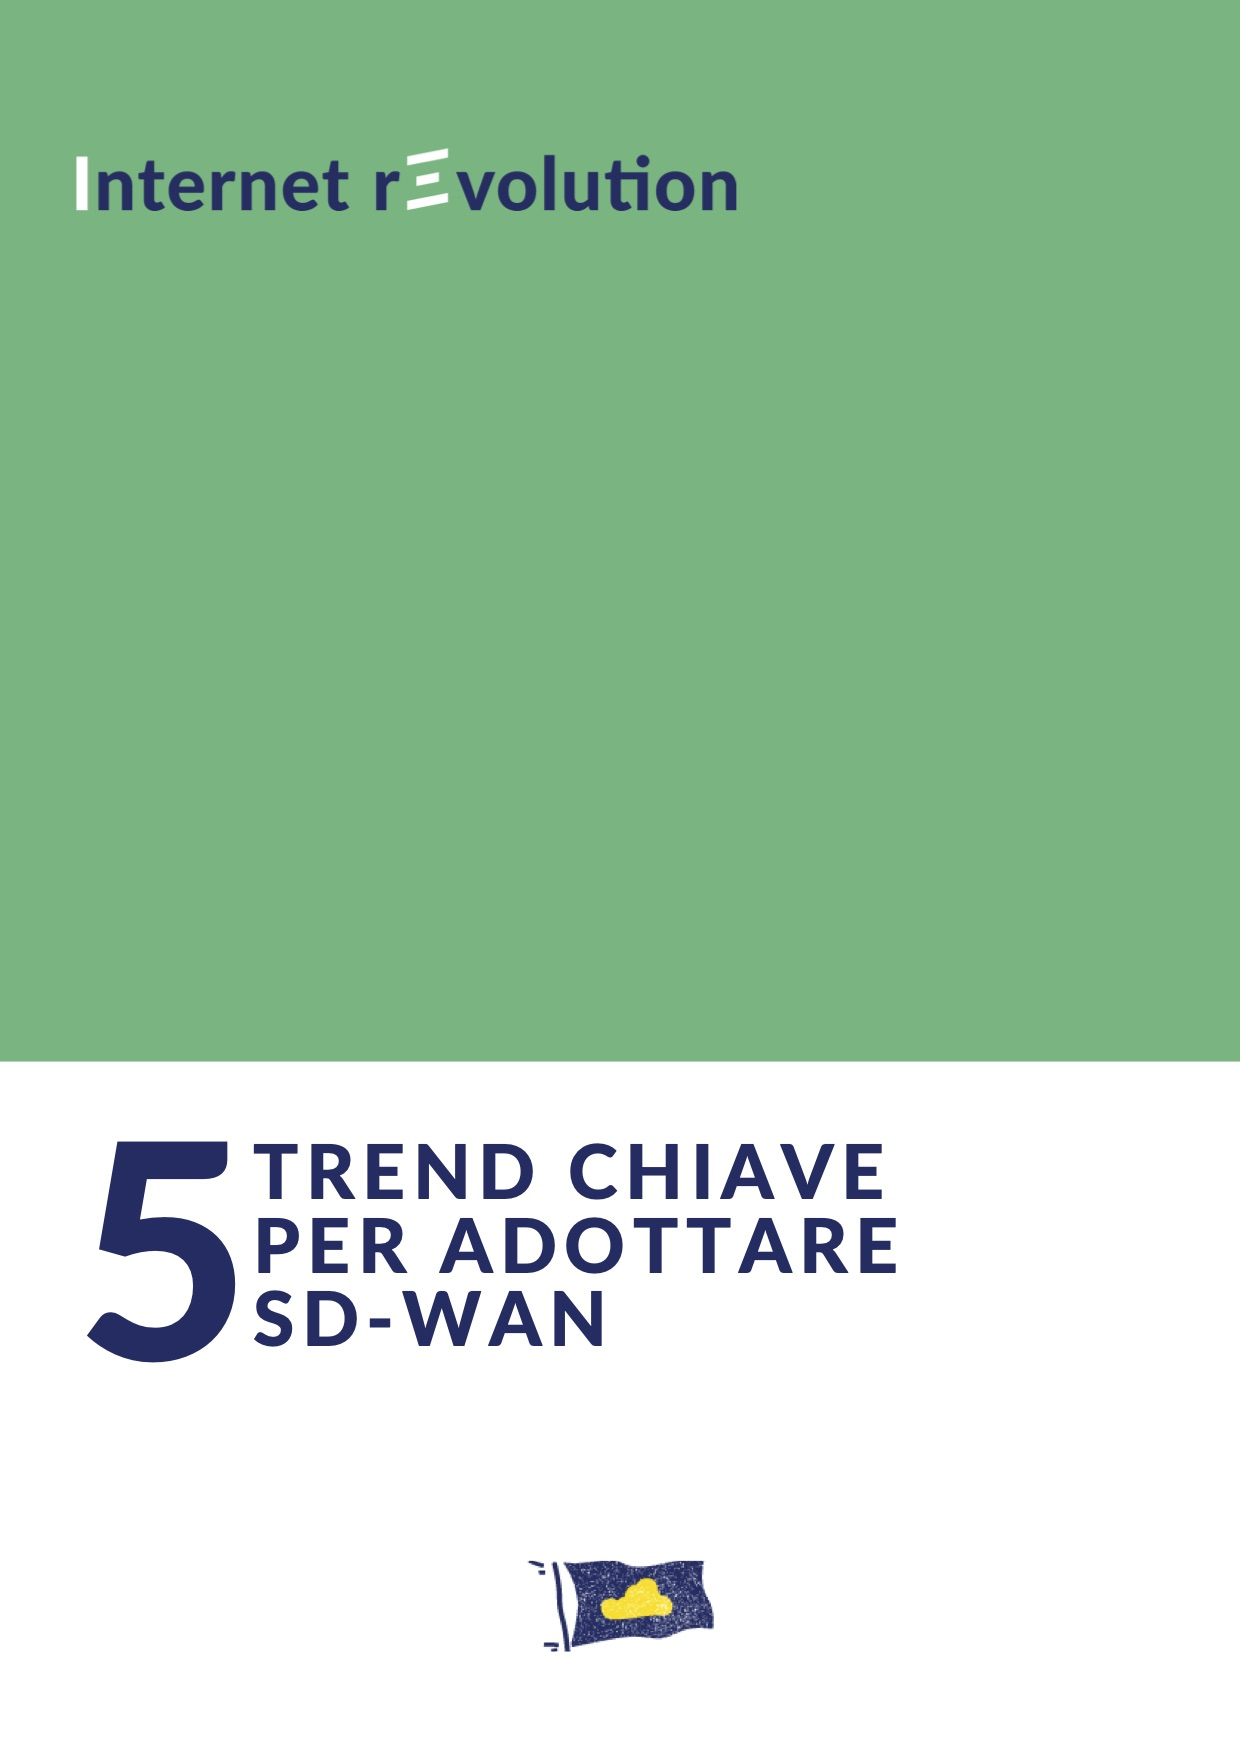 5 Trend Chiave